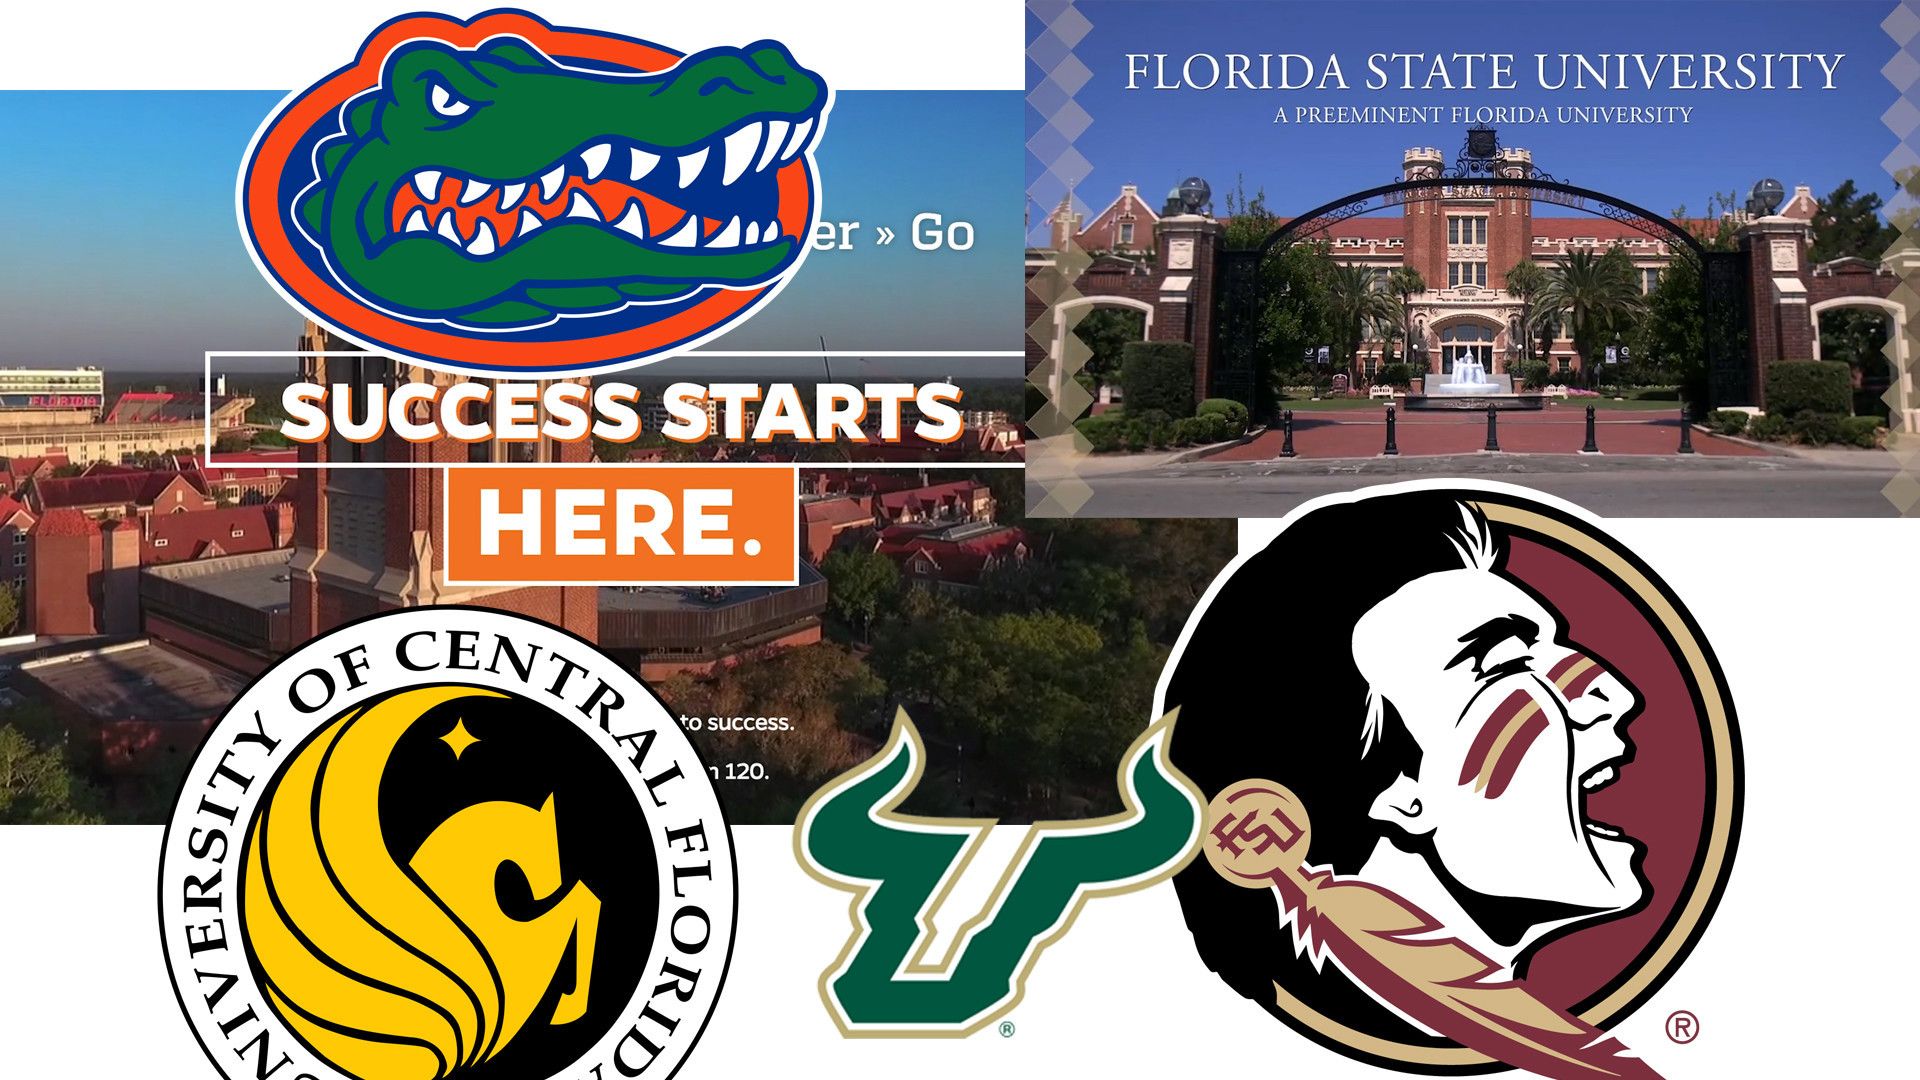 Florida college admissions: Getting into UF, FSU, UCF may